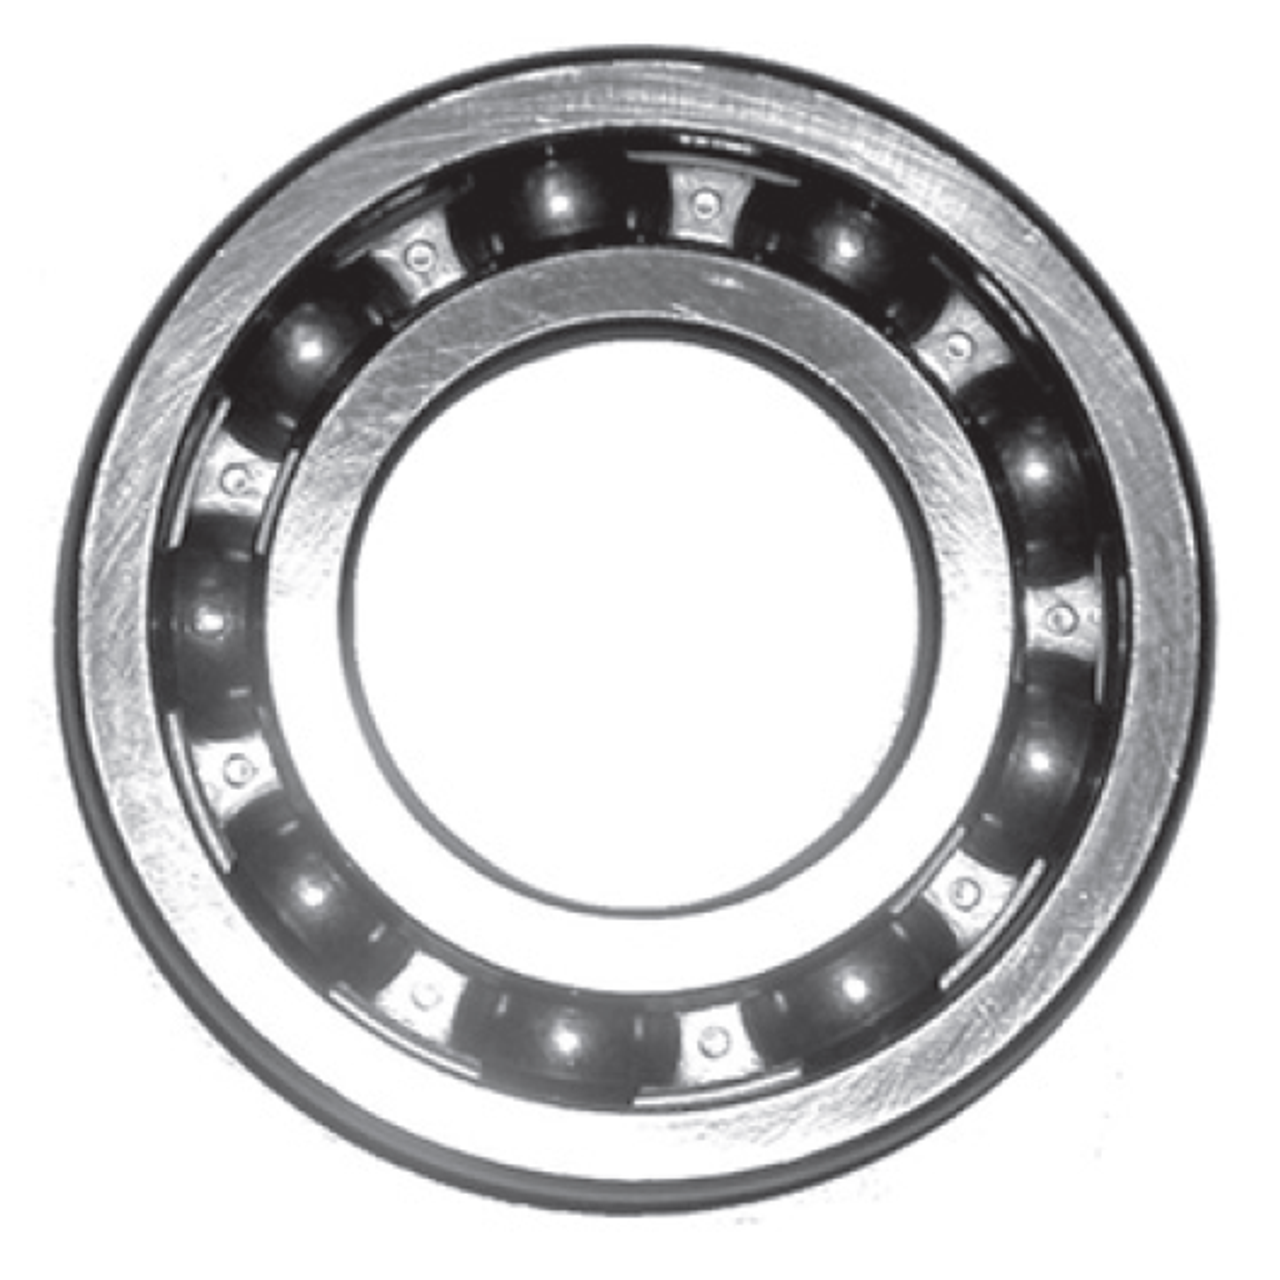 New Aftermarket Bearing [Replaces OEM#s 385503, 93306-207U0-00, 30-803893T]